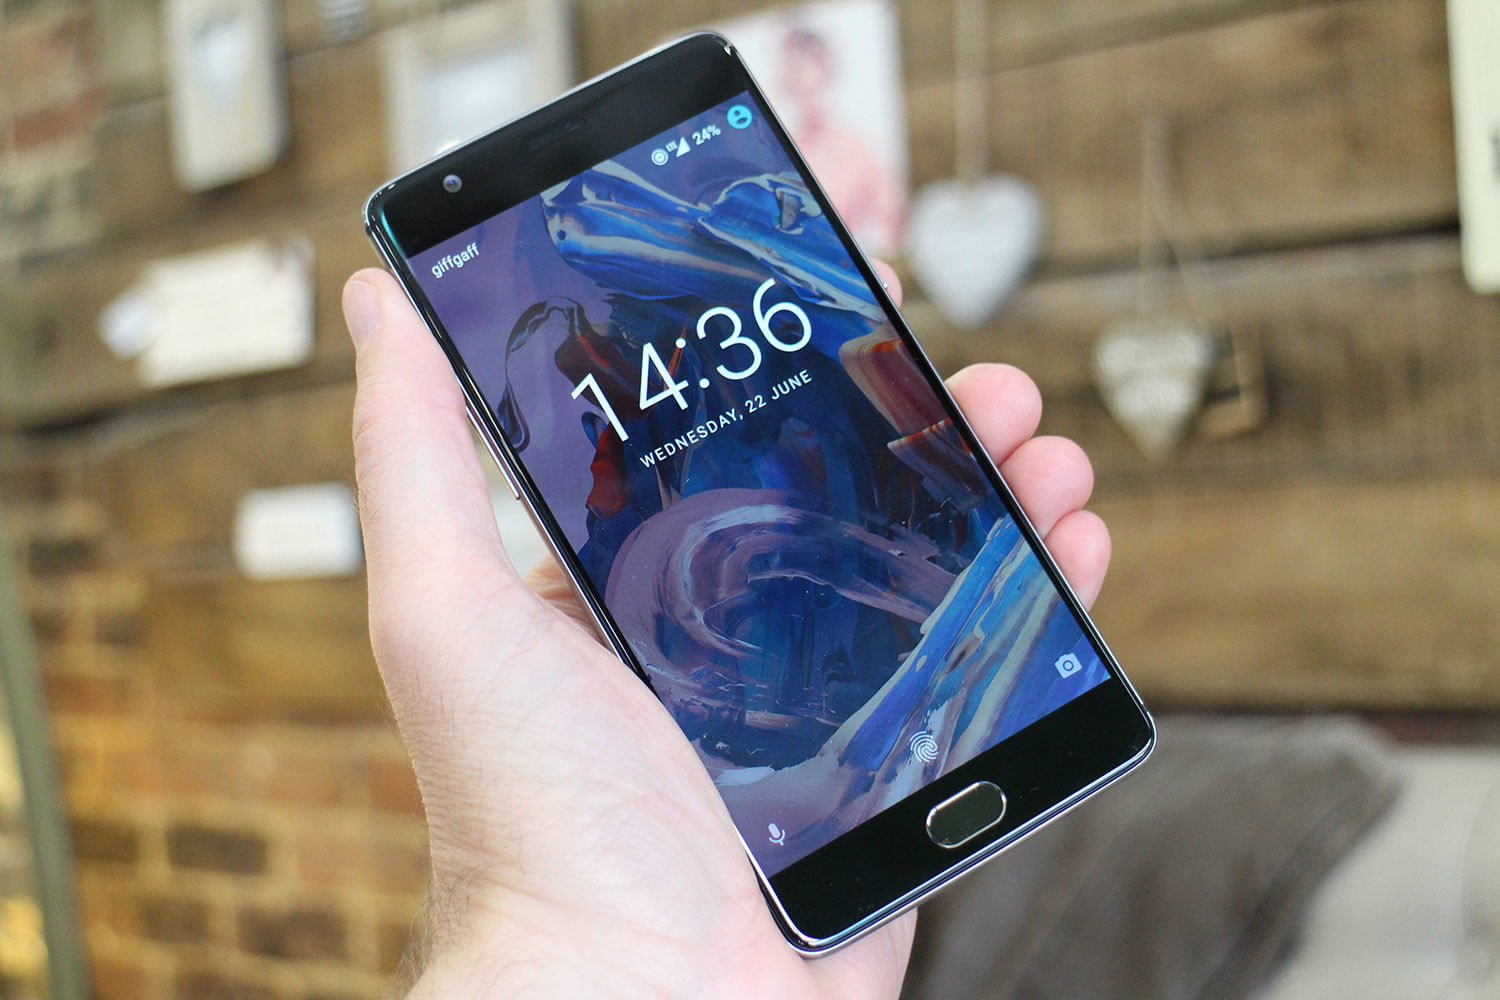 OnePlus 3 and 3T: 12 Common Problems, and How to Fix Them